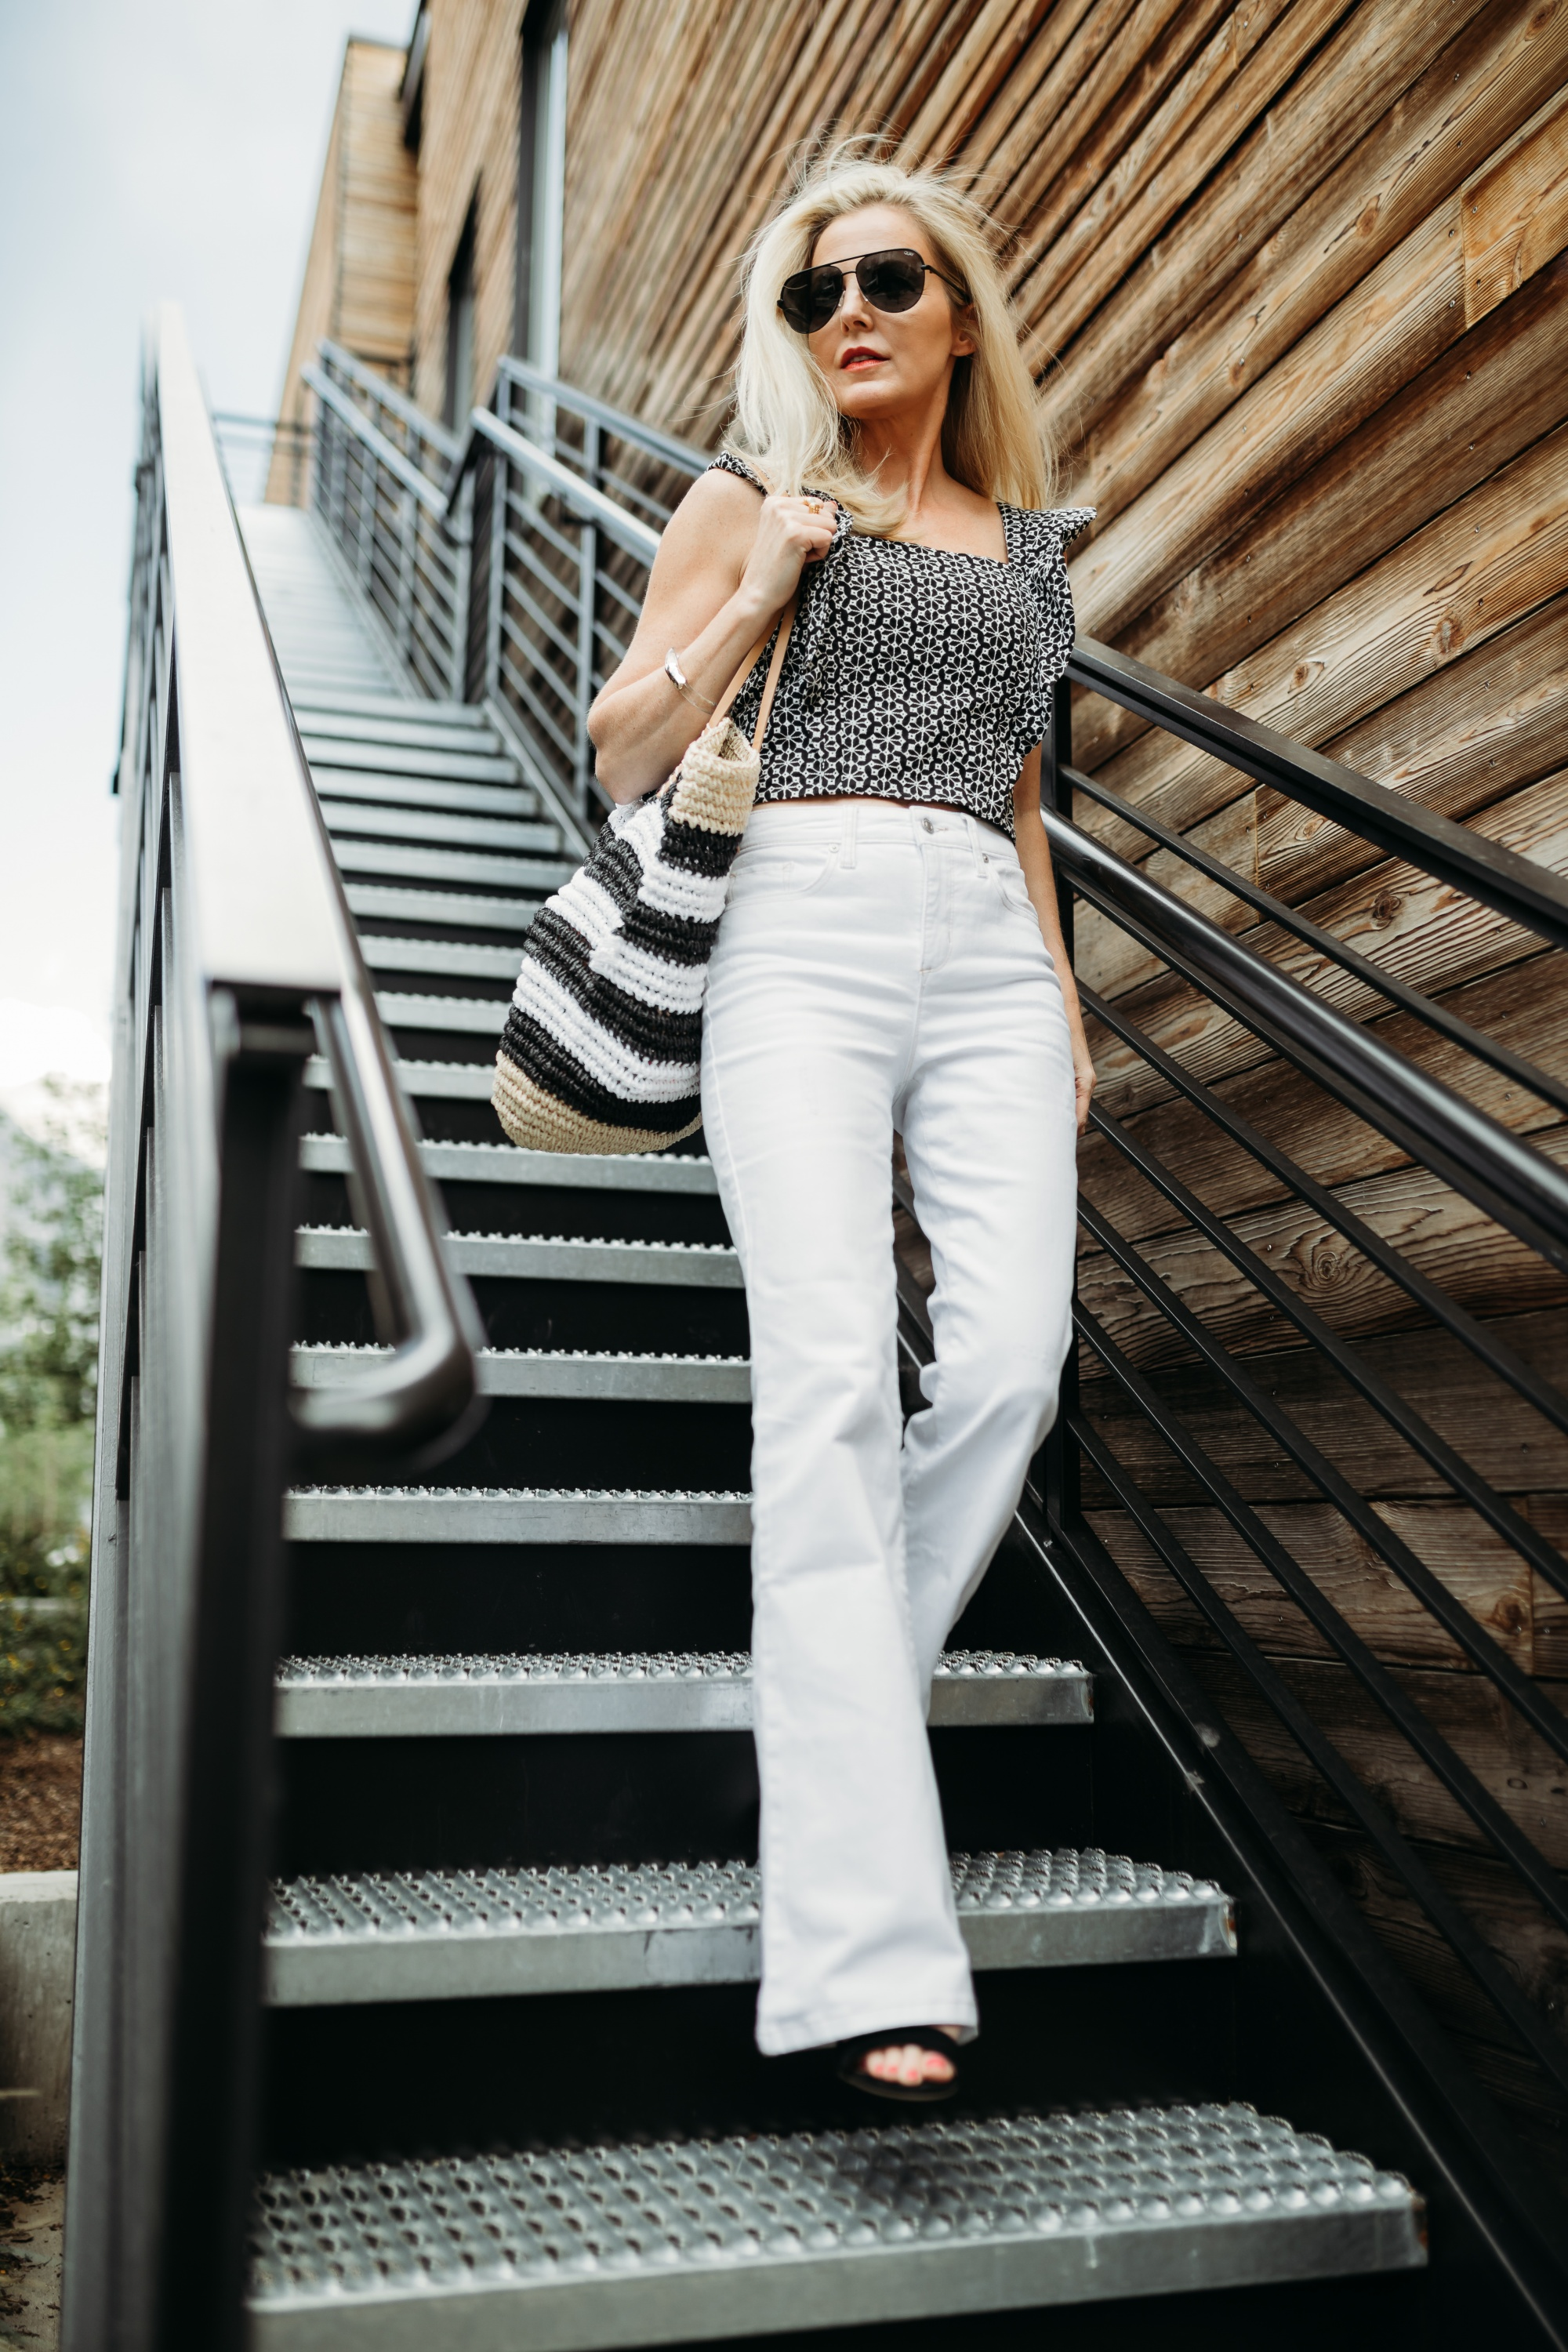 How to Make Legs Look Longer, Fashion blogger Erin Busbee of Busbee Style wearing white flared jeans, printed ruffle sleeve top, black strappy block heel sandals, and striped tote bag by Scoop from Walmart in Telluride, Colorado